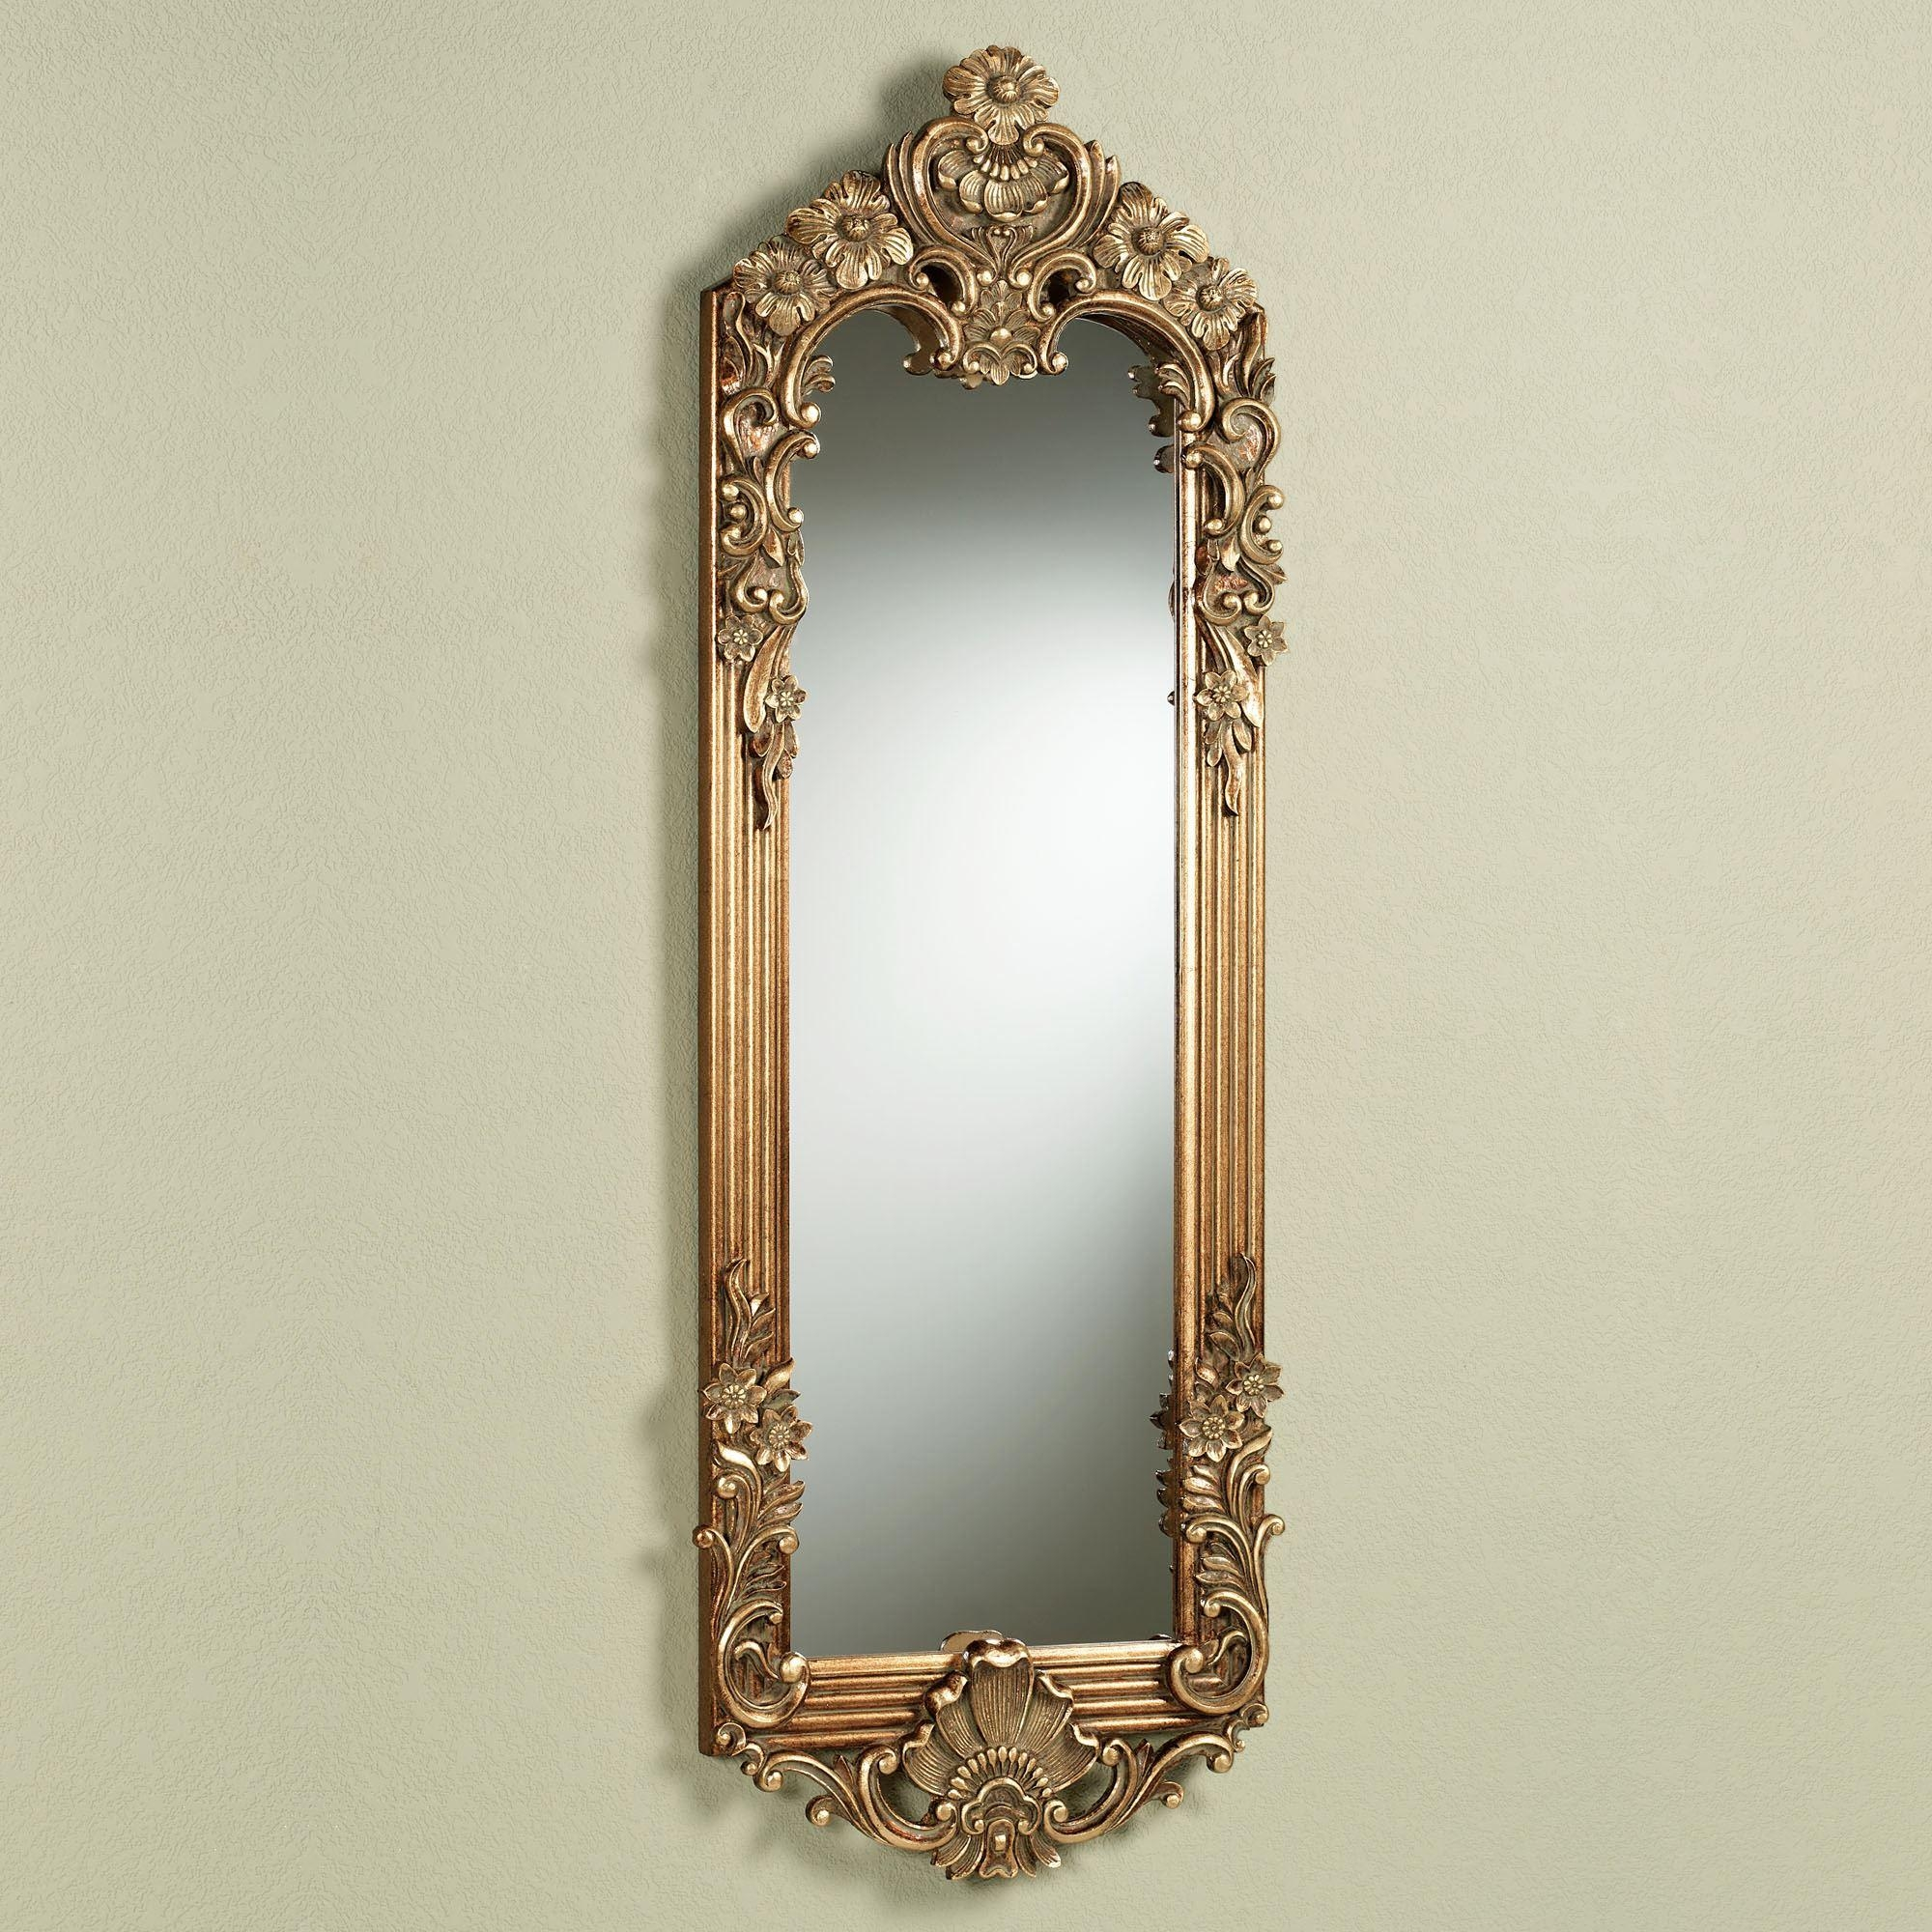 Wall Mirrors | Touch Of Class With Regard To Antique Gold Mirrors For Sale (Image 20 of 20)